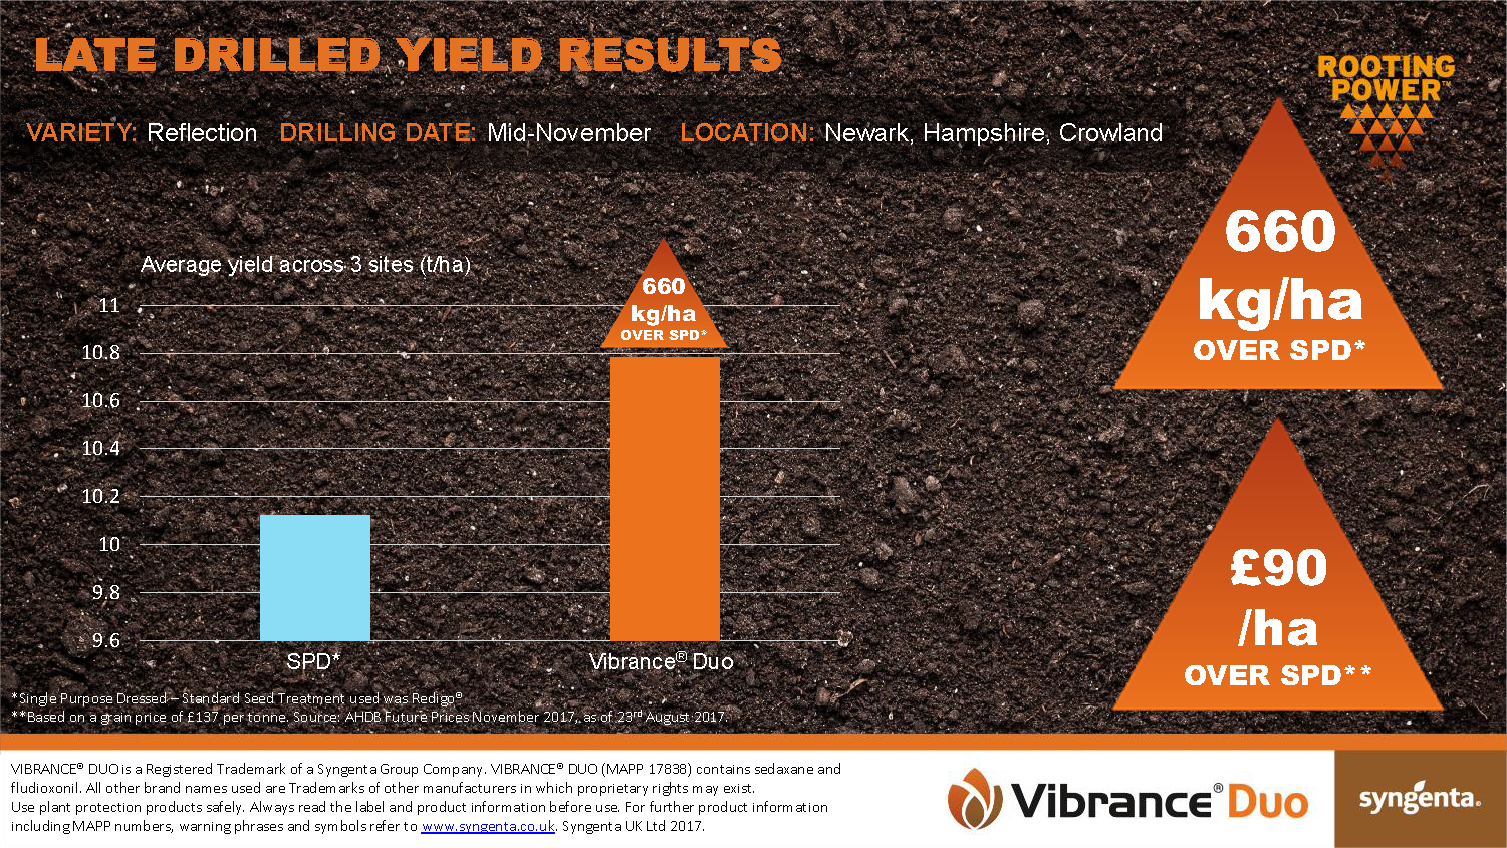 Late Drilled Yield Results for Vibrance Duo